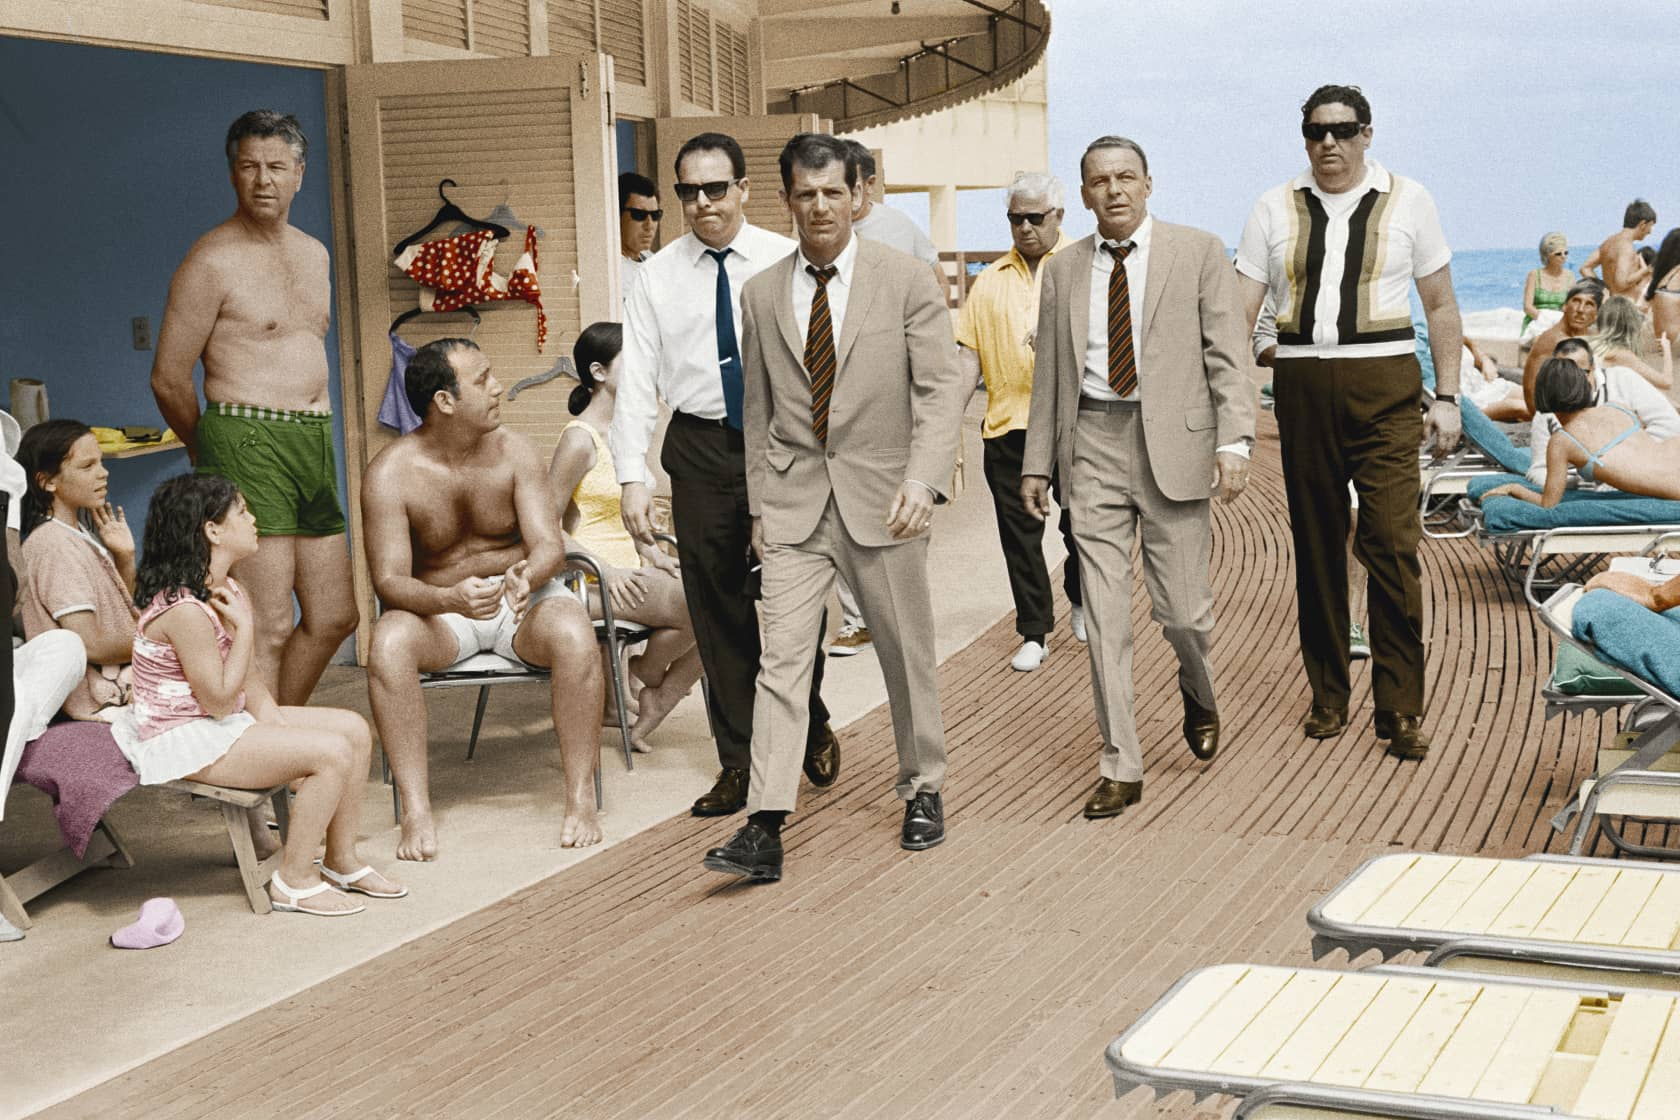 Terry O'Neill Frank Sinatra, Miami Boardwalk - Colour Posthumous C-Type Print